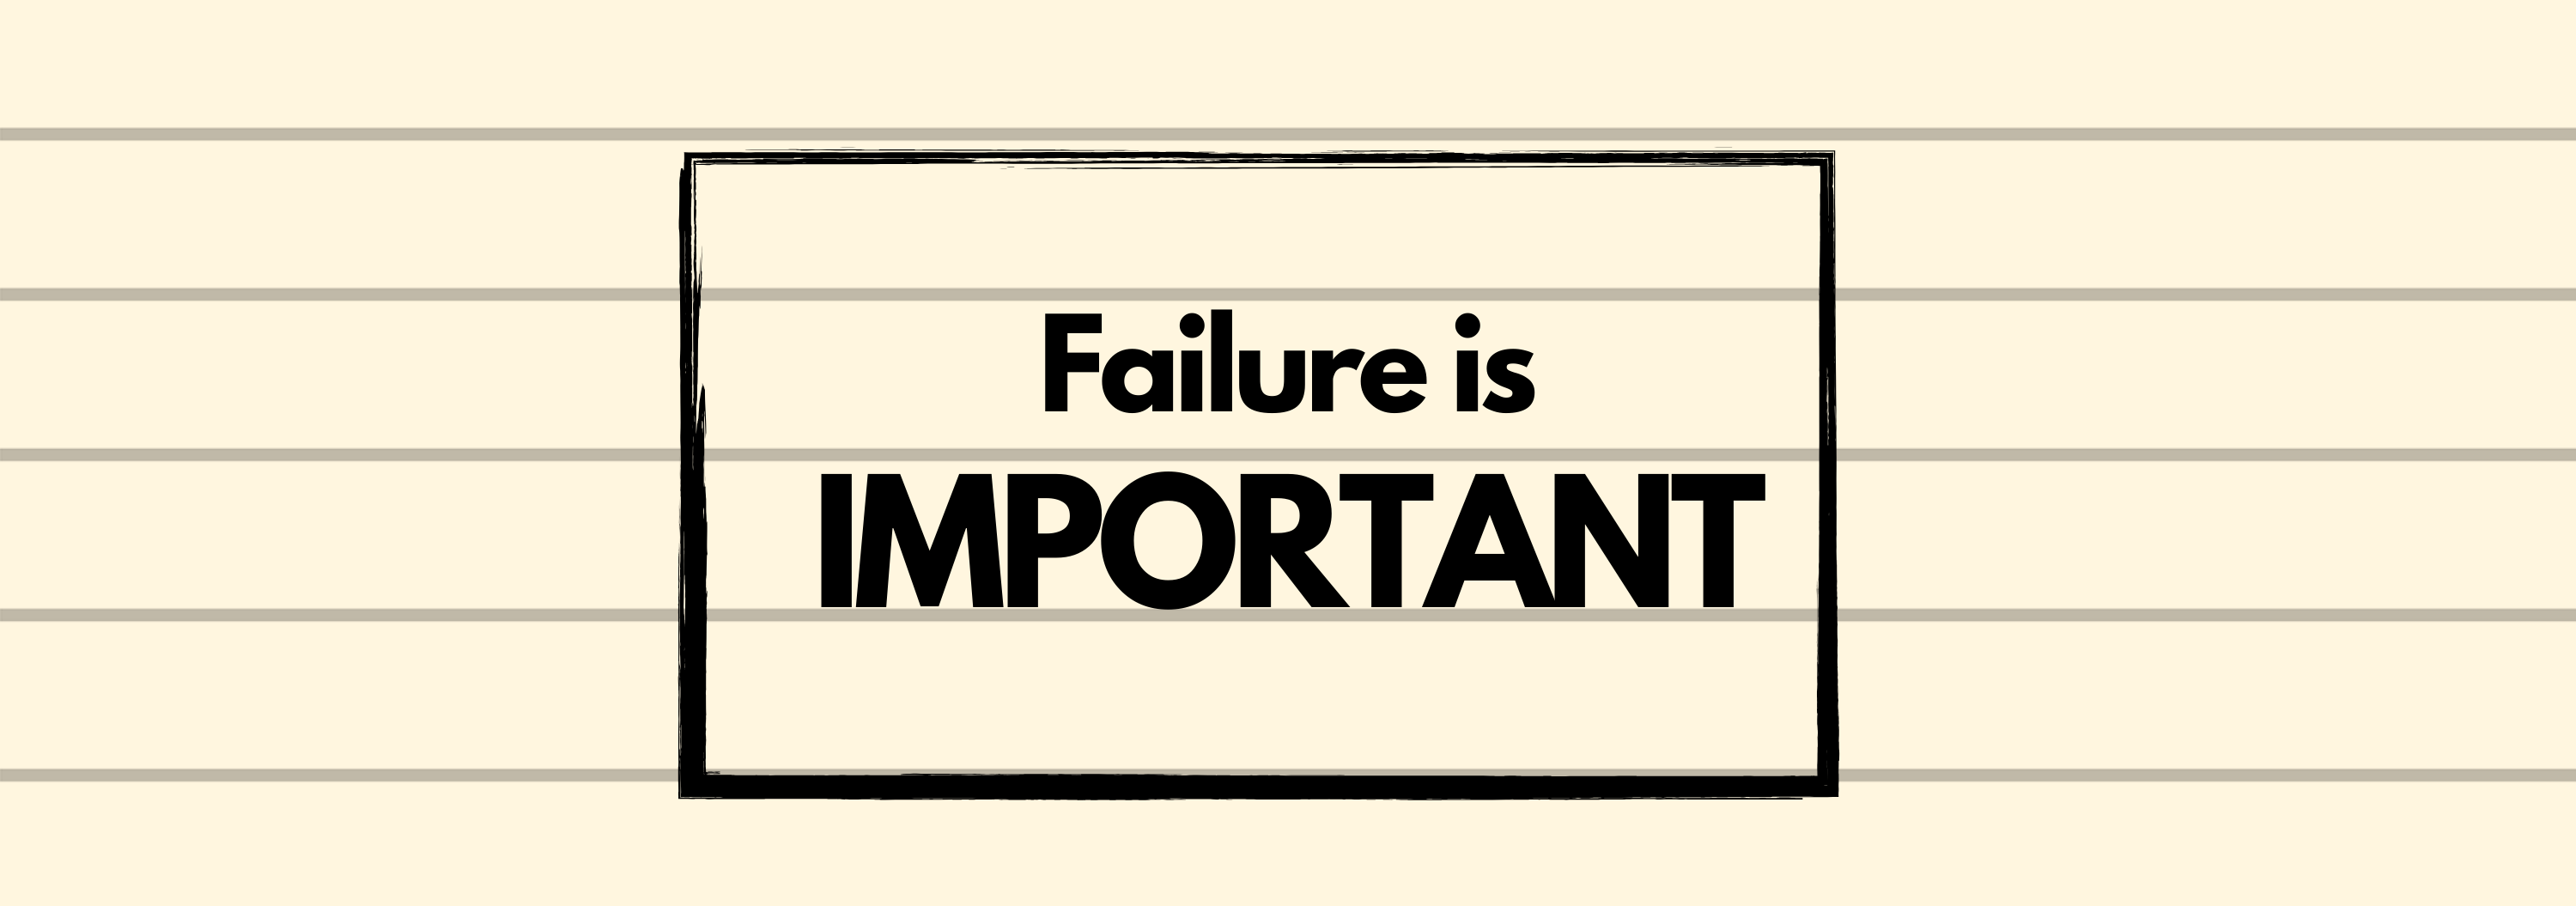 Failure is Important header image